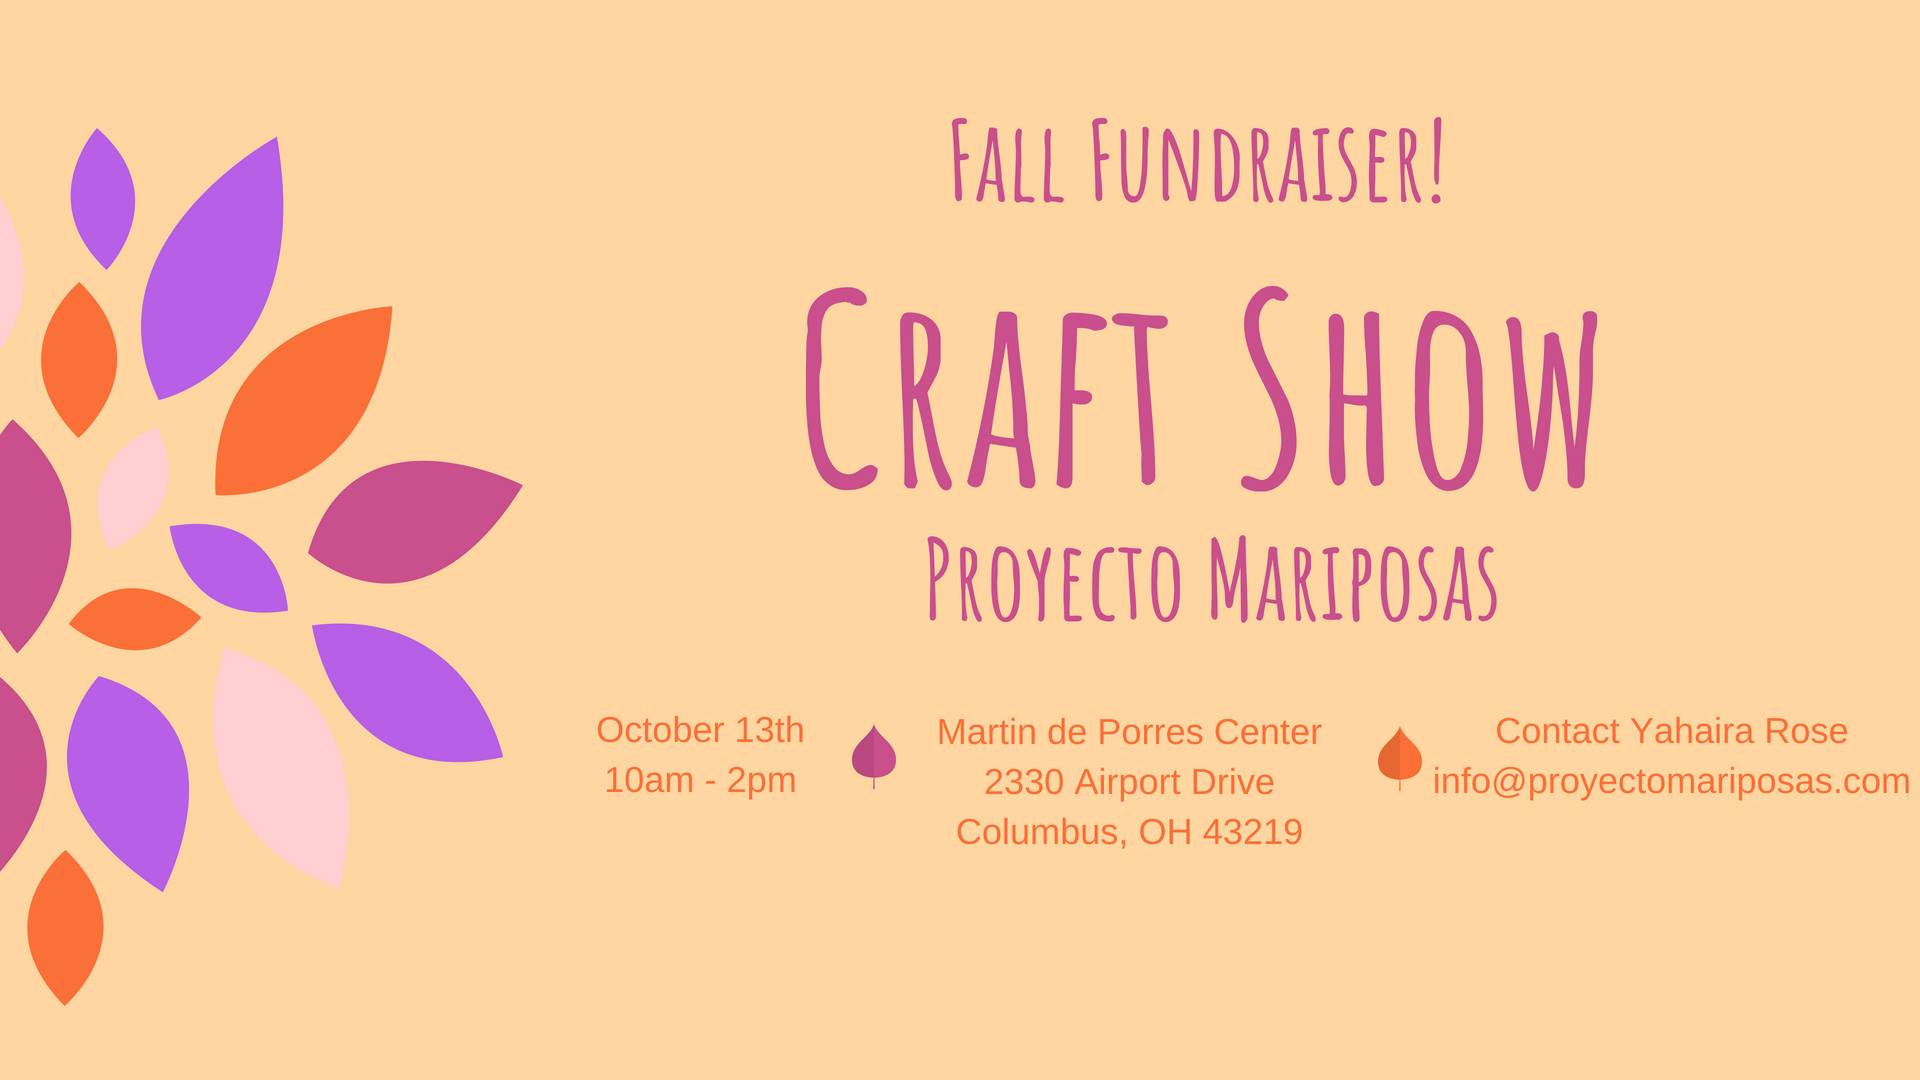 Fall fundraising craft show, at Martin de Porres Center. Event benefits Projecto Mariposa. October 13th, 10:00 am to 2:00 pm.